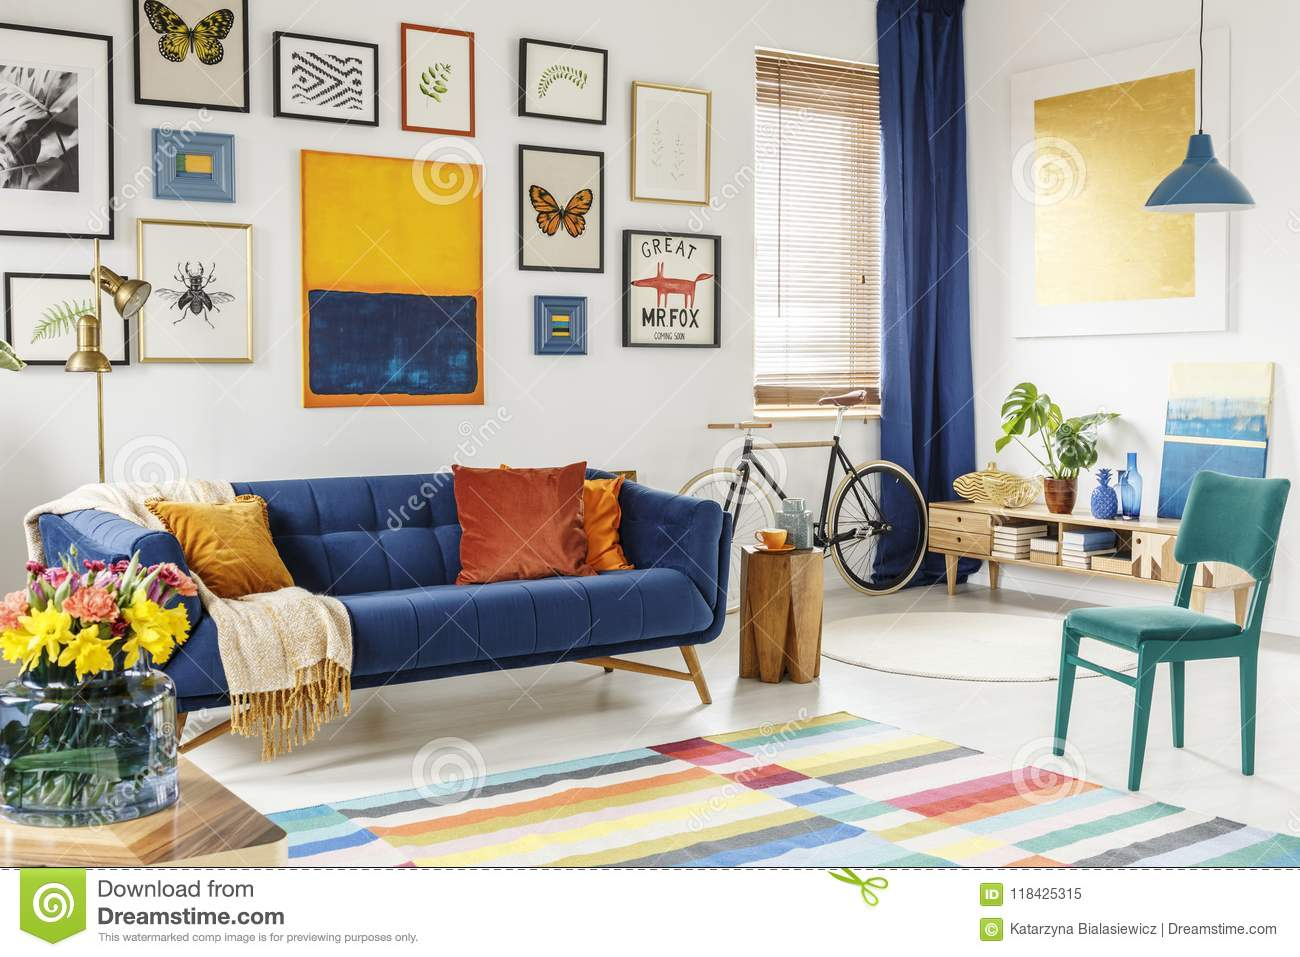 Spacious living room interior with a blanket and orange pillows on a blue sofa green chair colorful rug and gallery of posters and painting on white wall